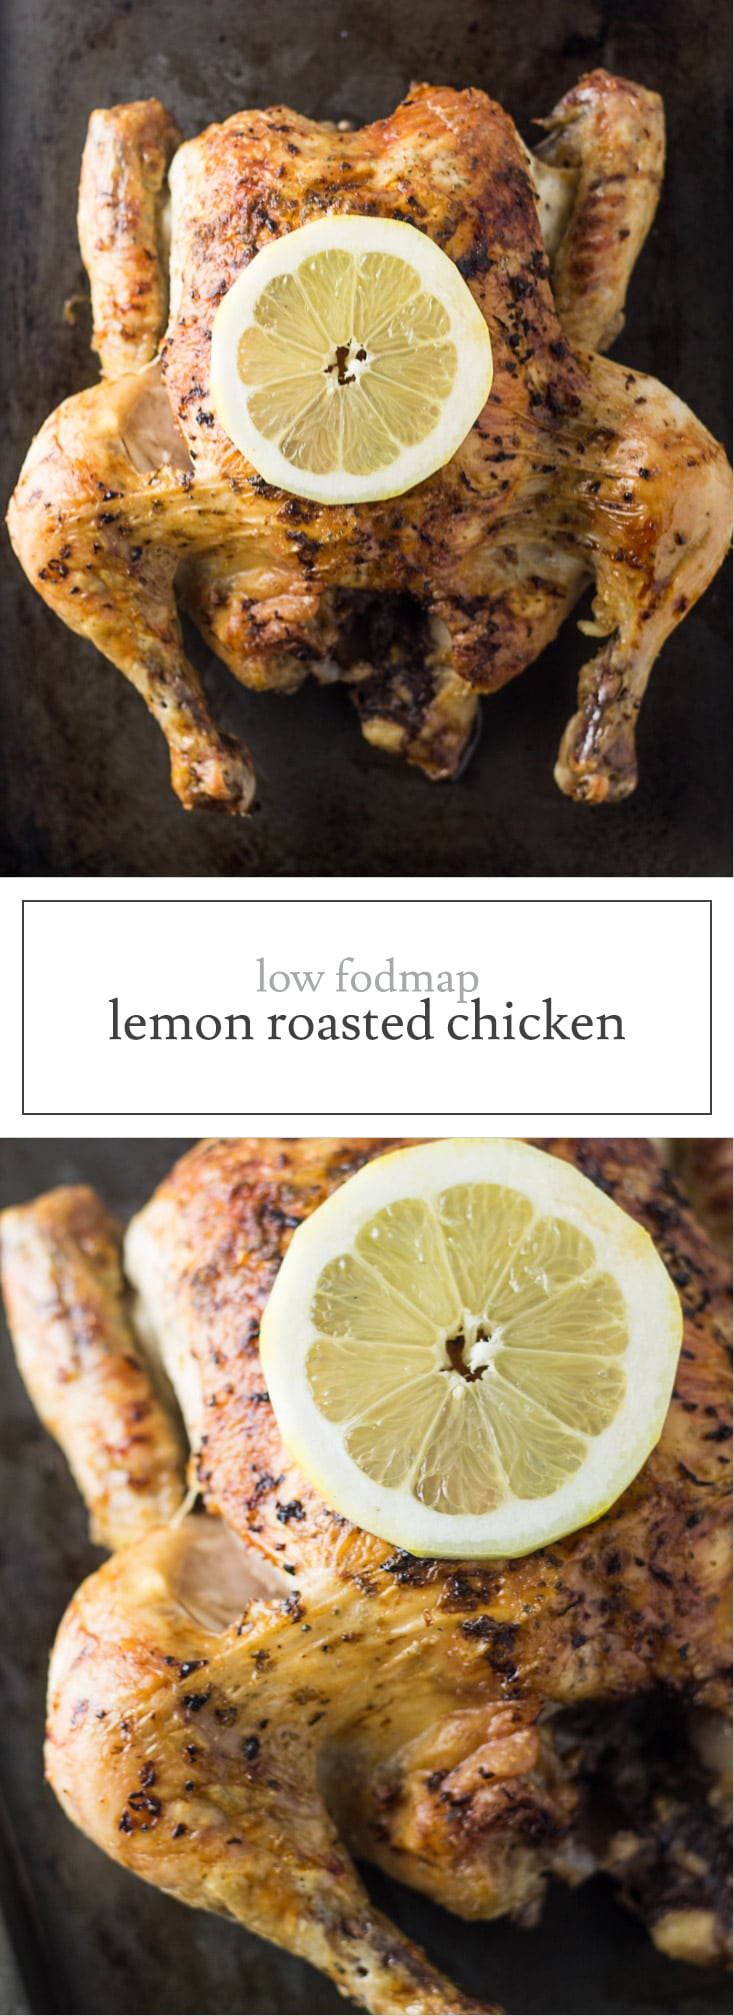 Crispy on the outside and tender on the inside, this easy-to-make Low FODMAP Lemon Roasted Chicken is the perfect cook once, eat twice (or more) dish! Save the bones to makeyour own Low FODMAP Chicken Broth.